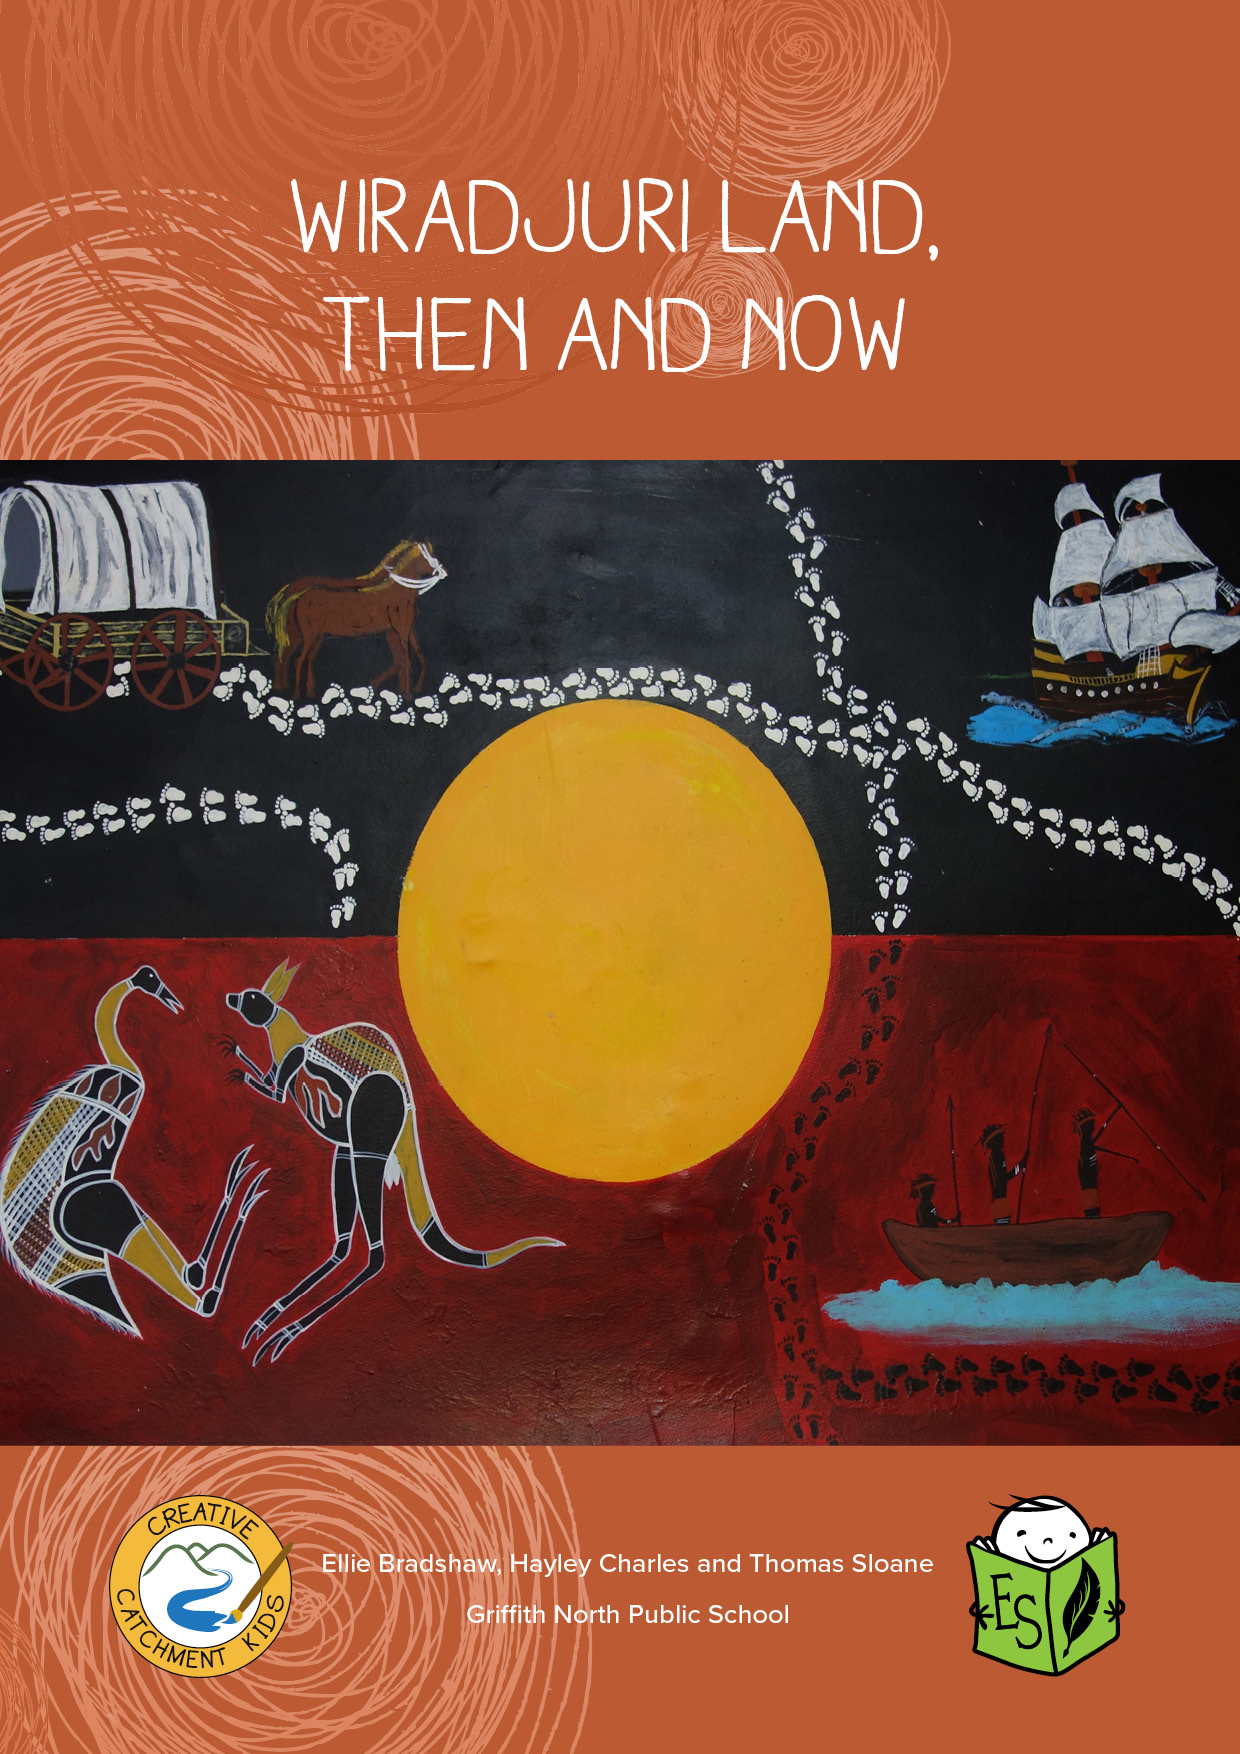 Wiradjuri Land, Then and Now